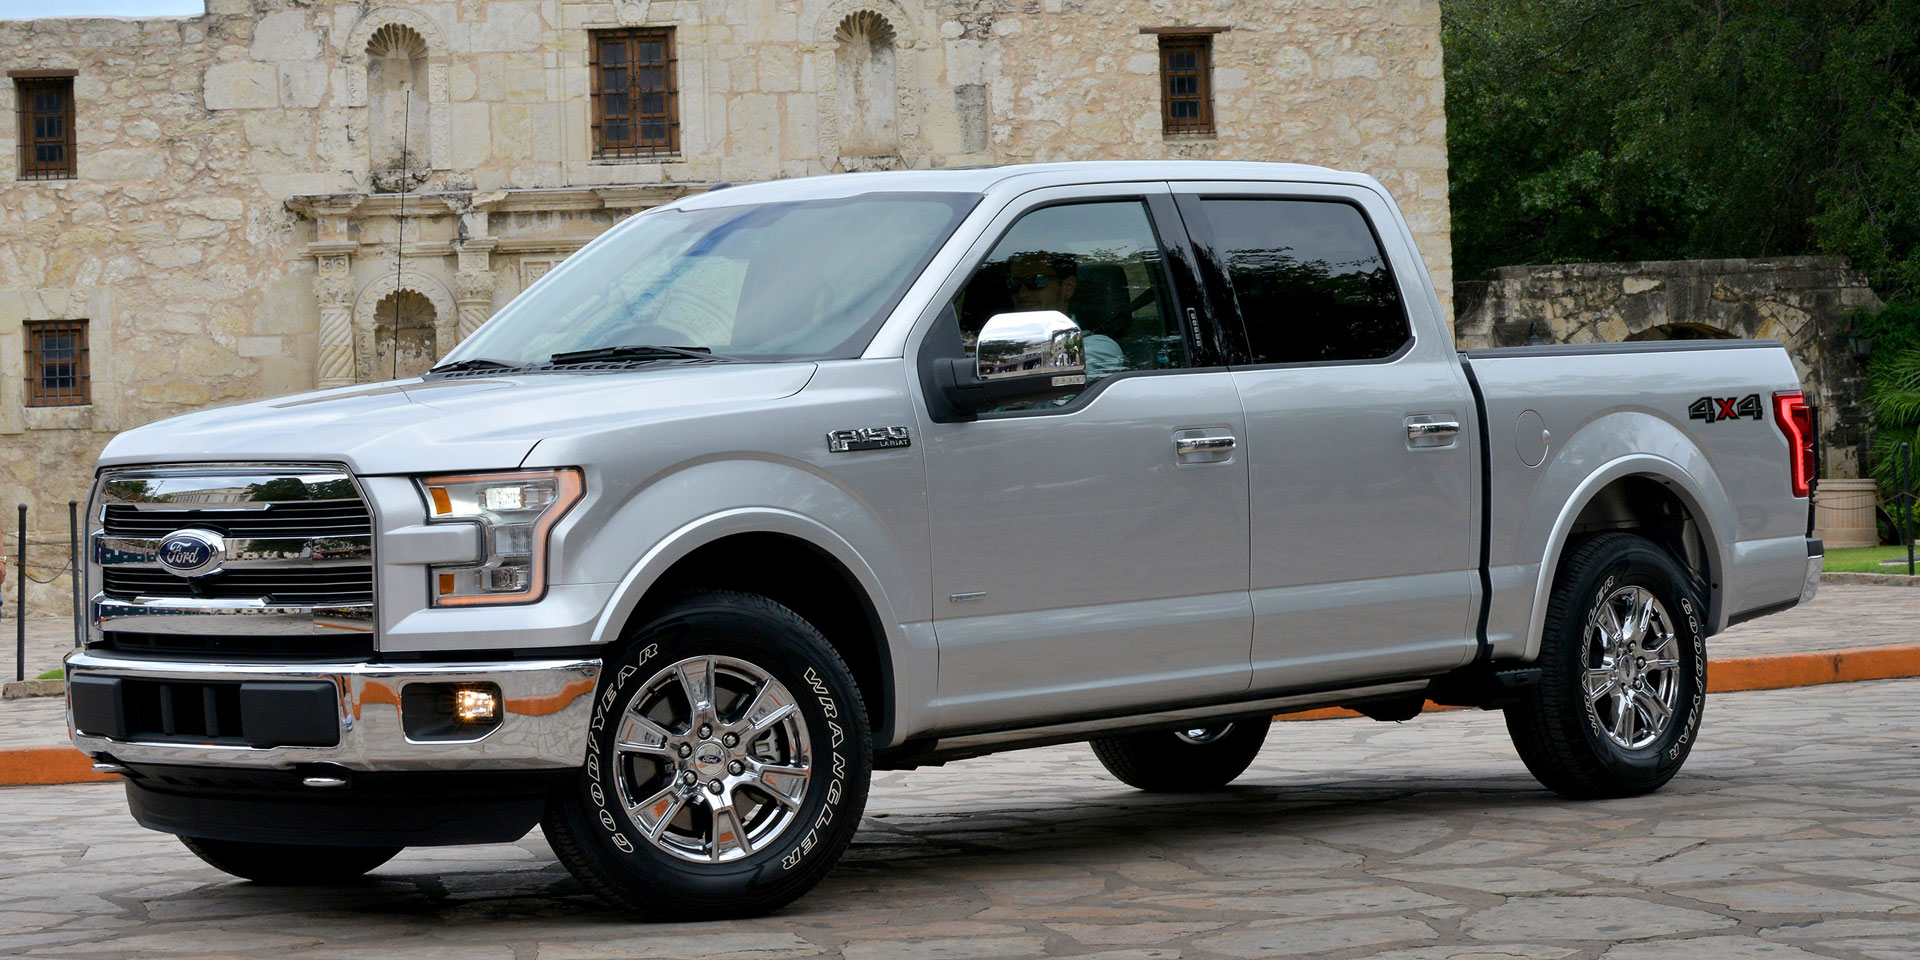 2015 - Ford - F-150 - Vehicles on Display | Chicago Auto ...